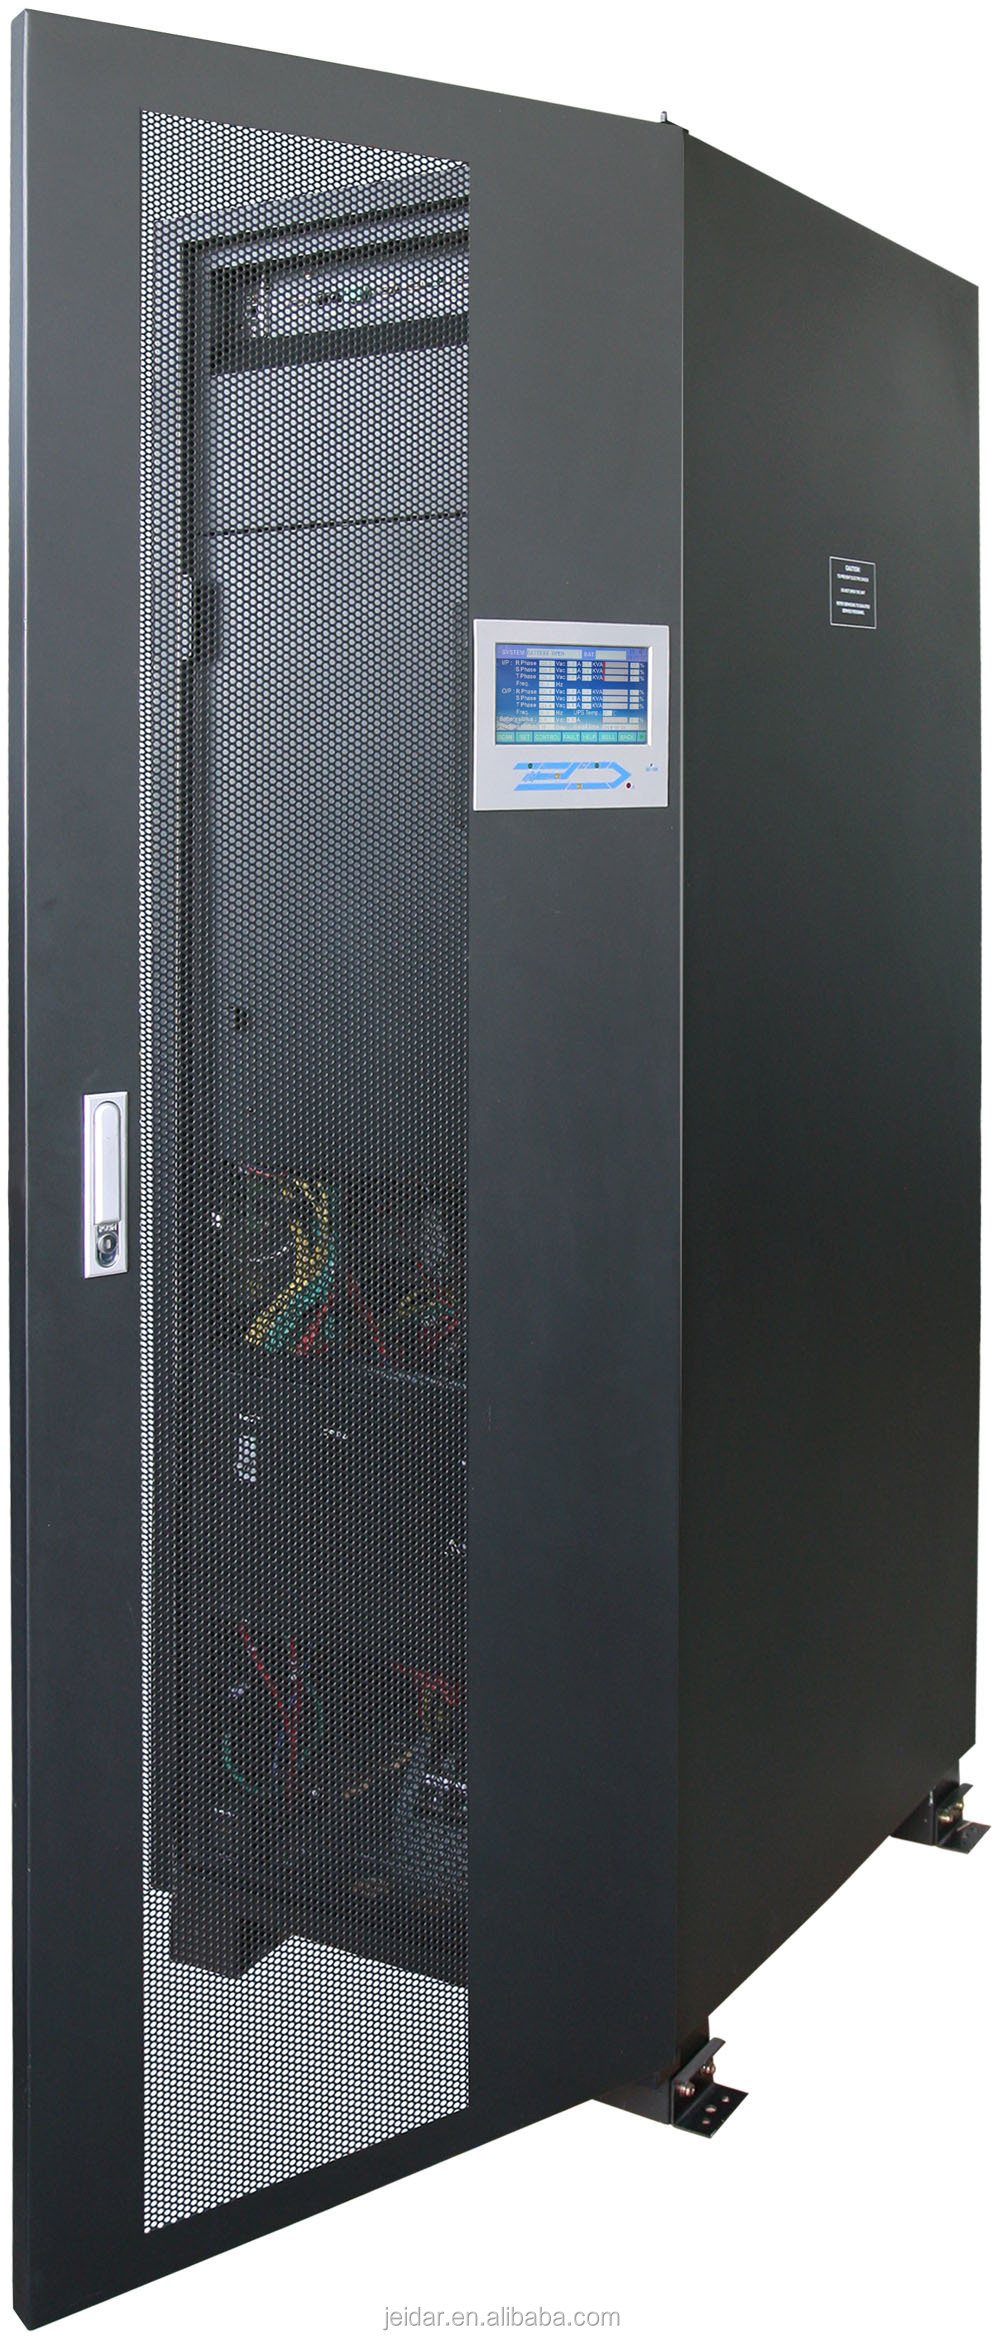 DT Series 3 Phase Online High Frequency UPS 80KVA